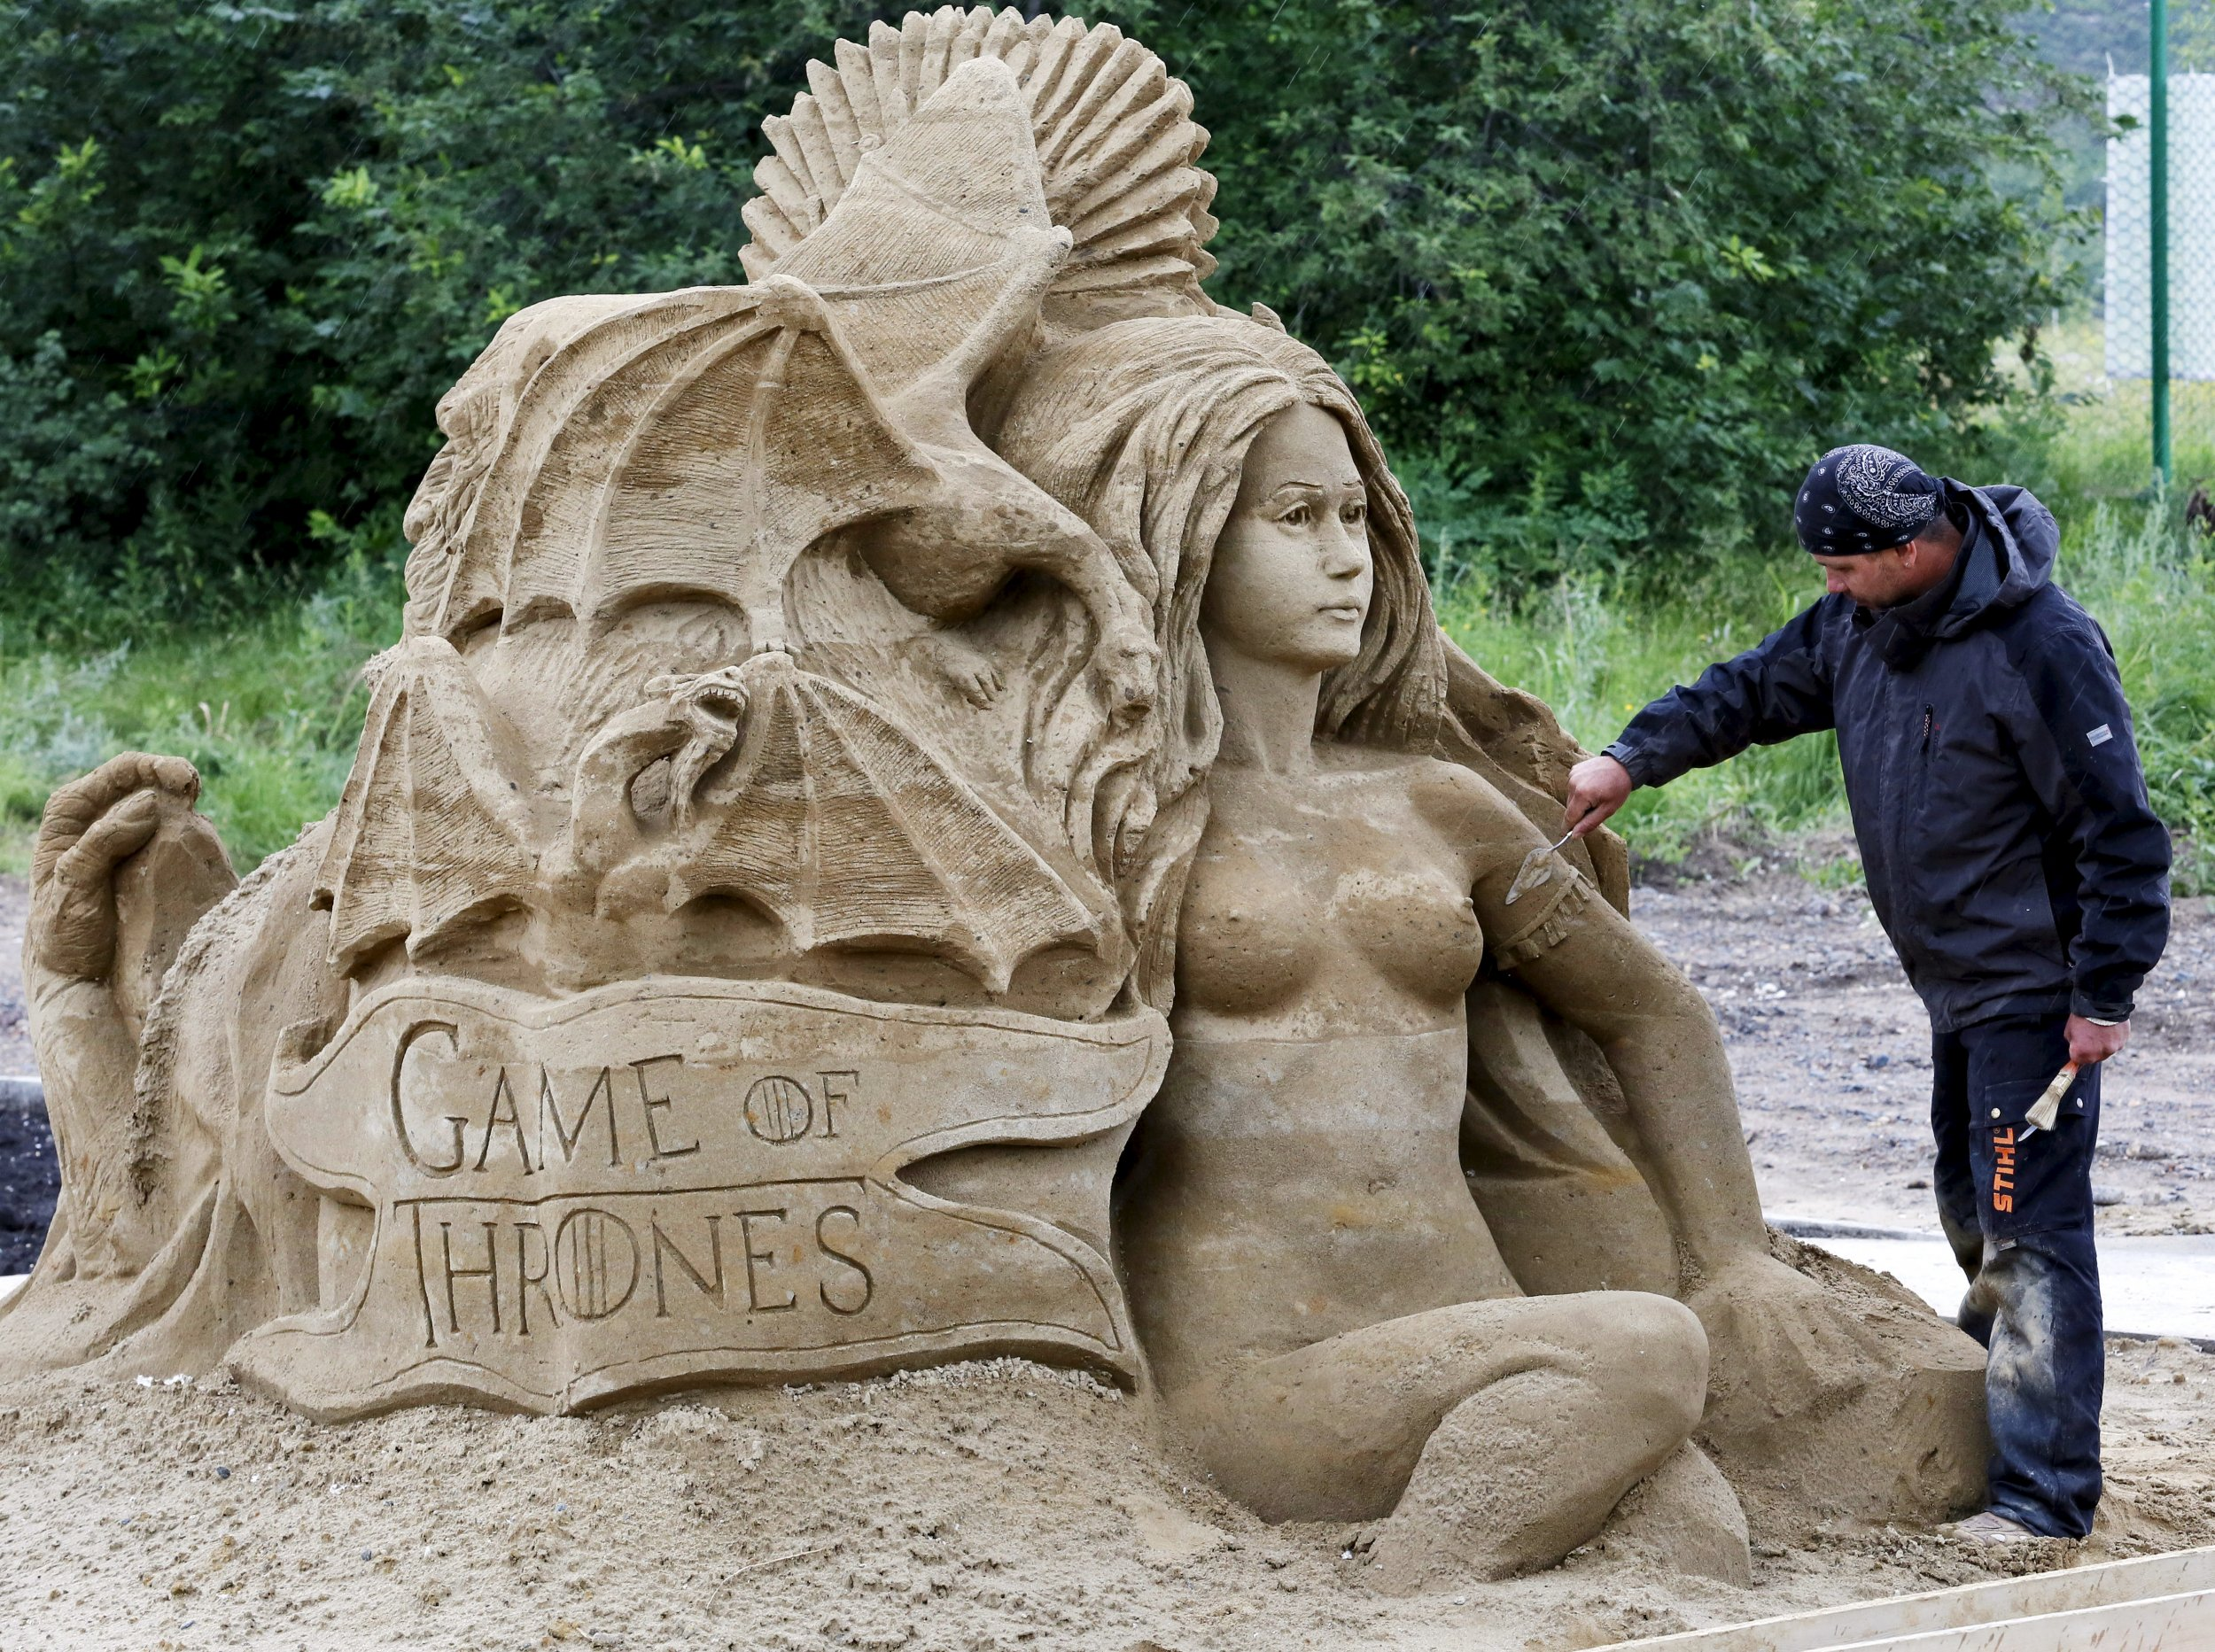 Game of Thrones in Russia